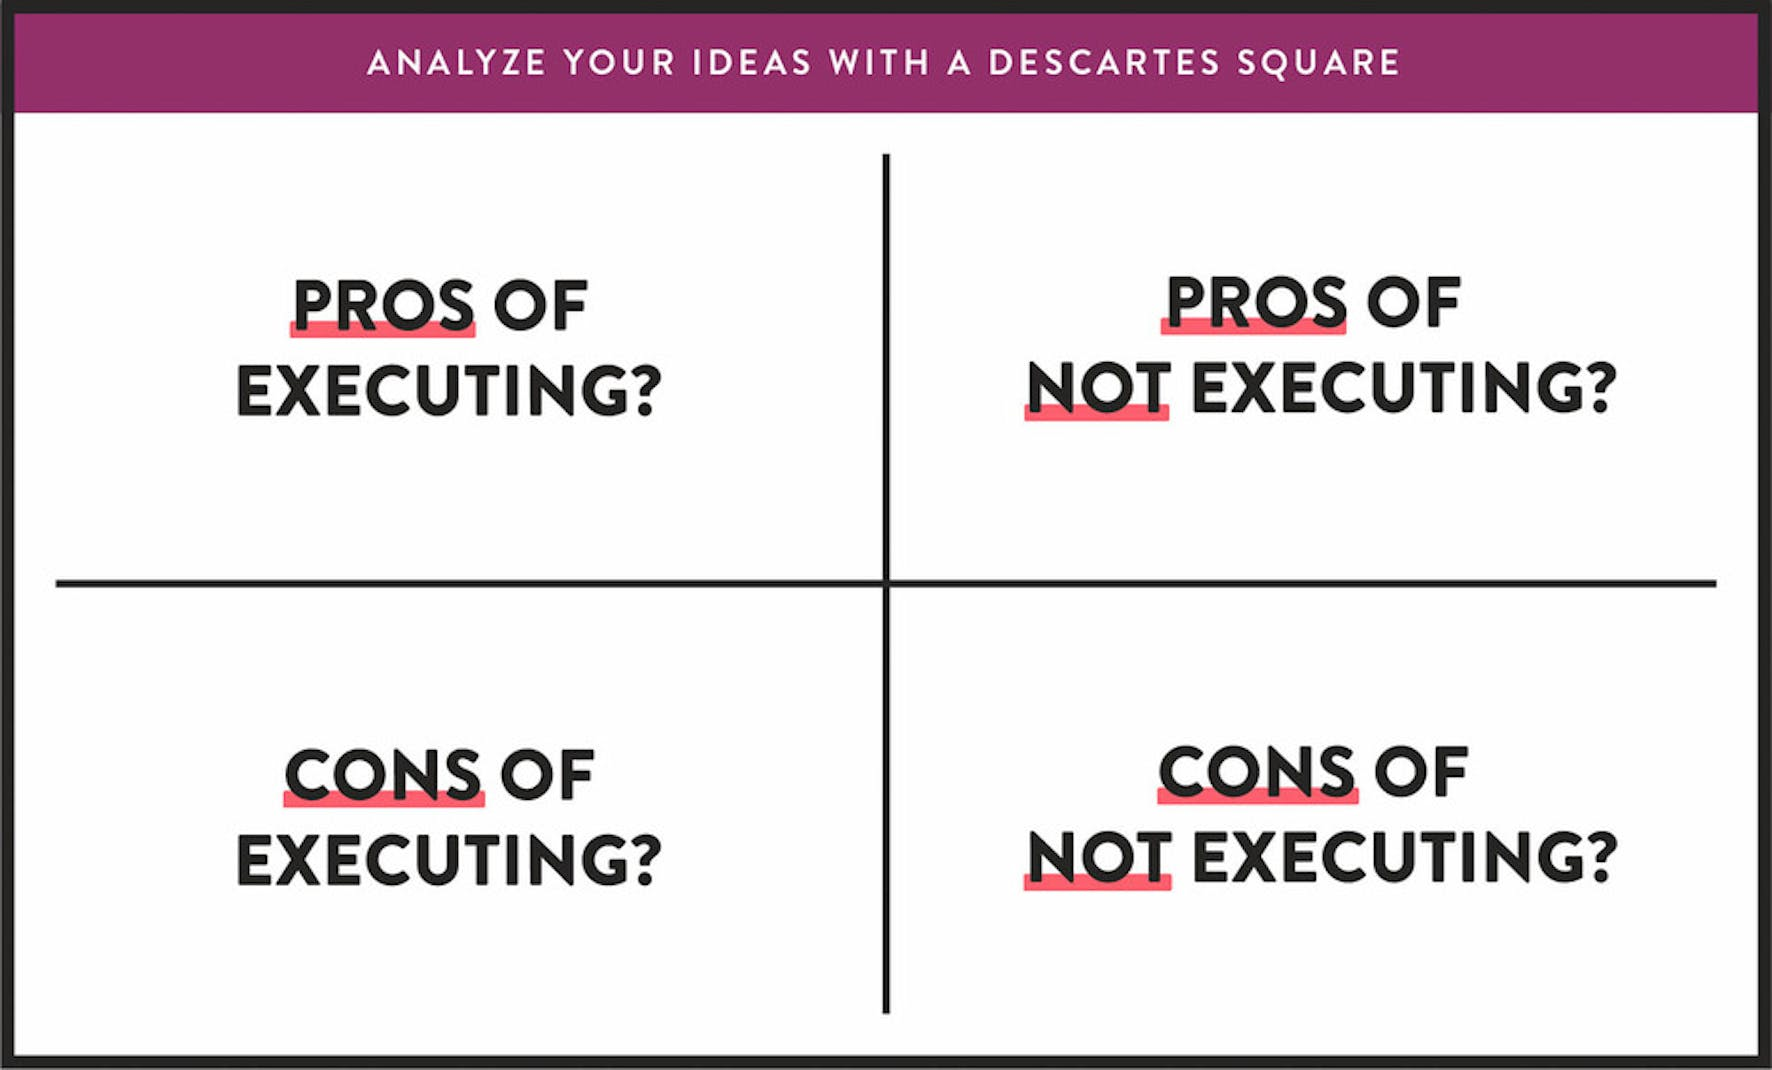 Analyze your ideas with a descartes square and achieve success